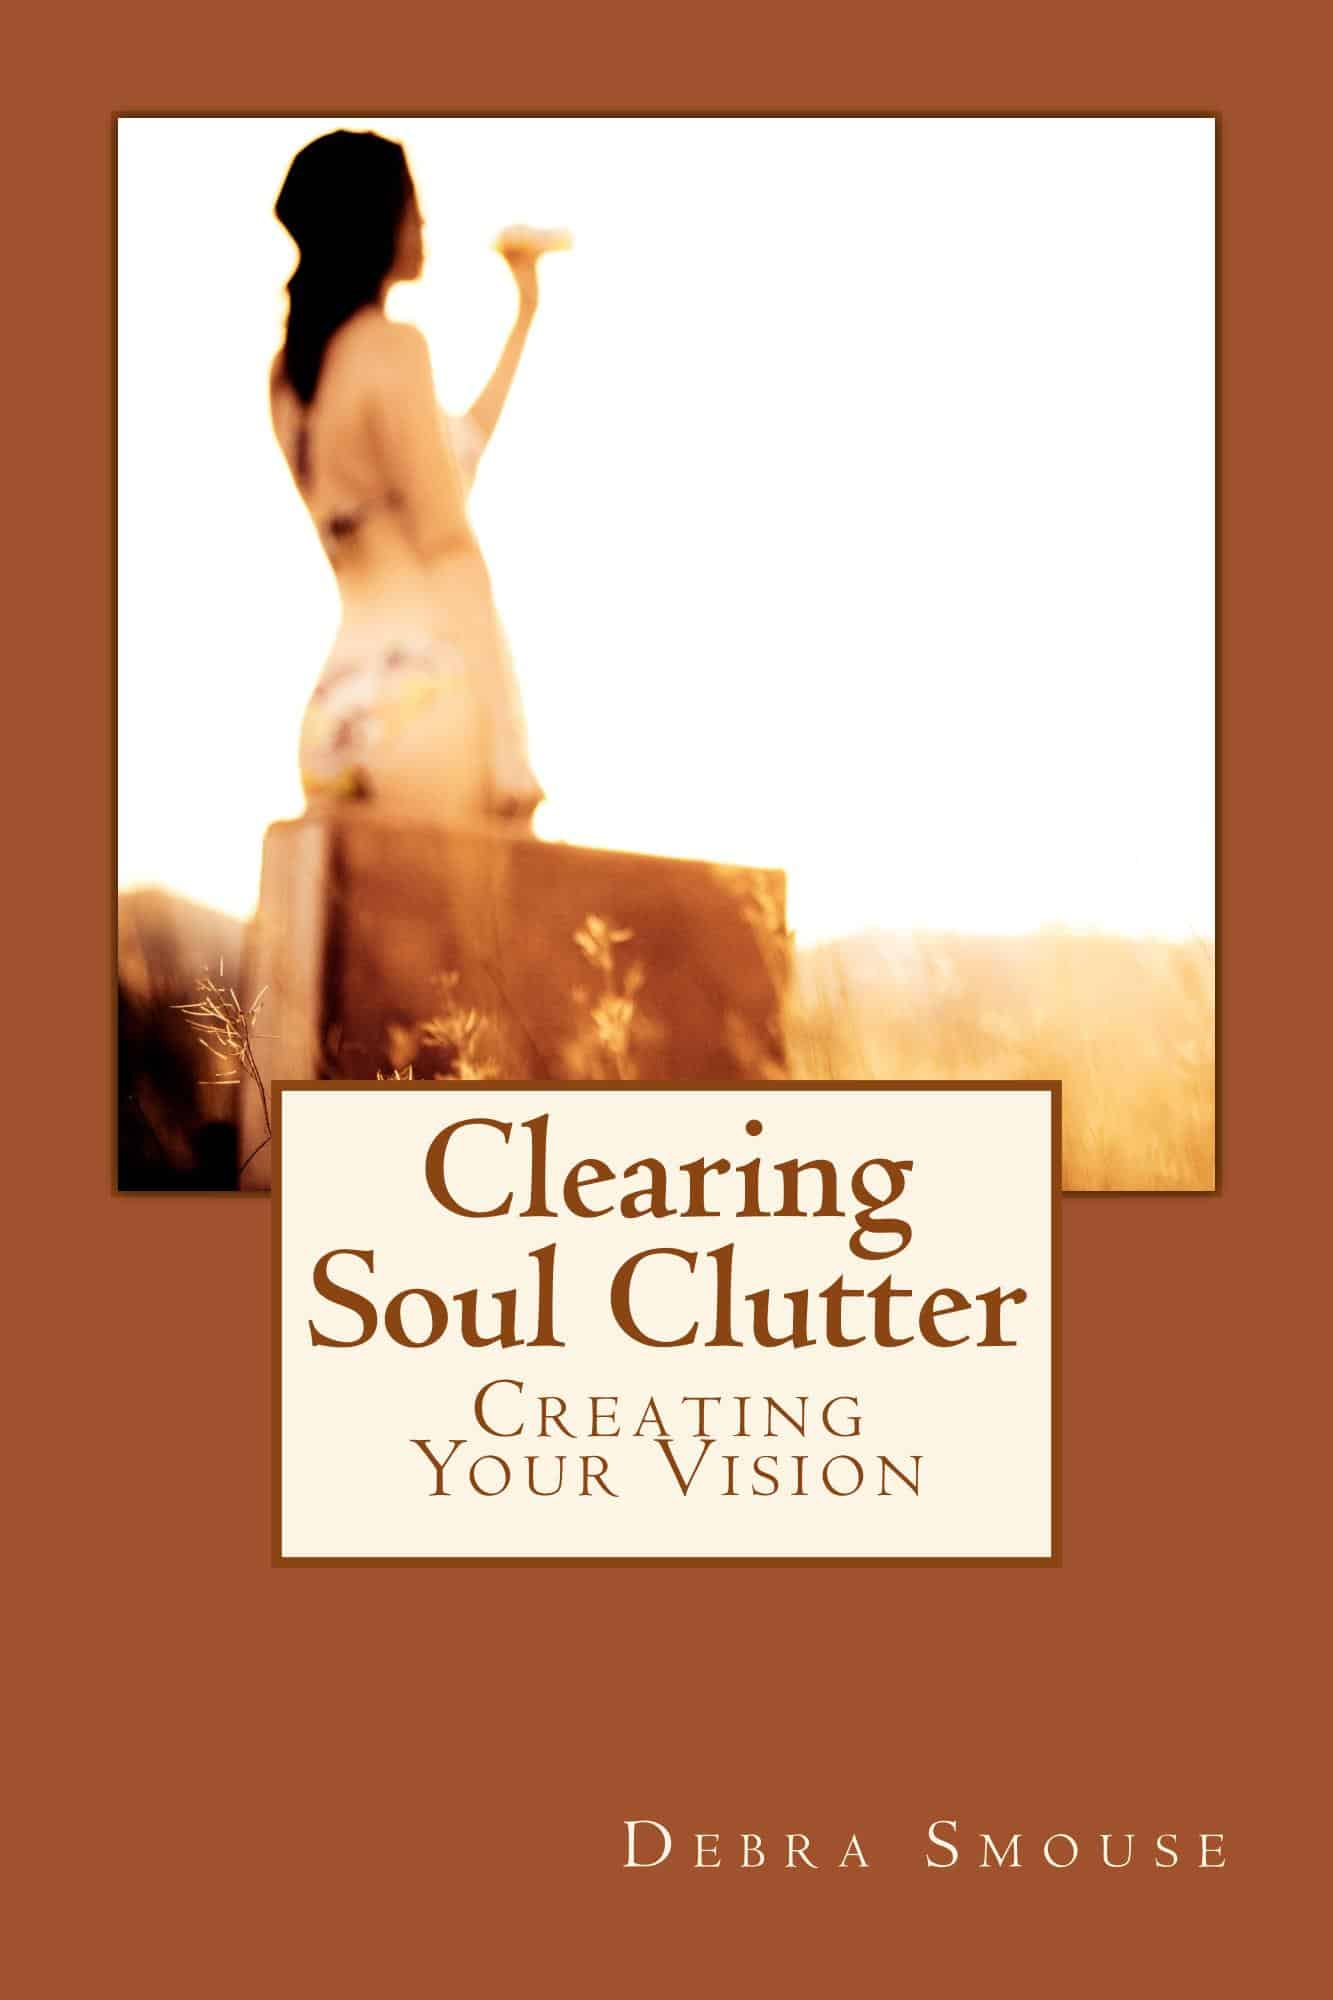 Want to know how to love your life no matter what? A vision can help!